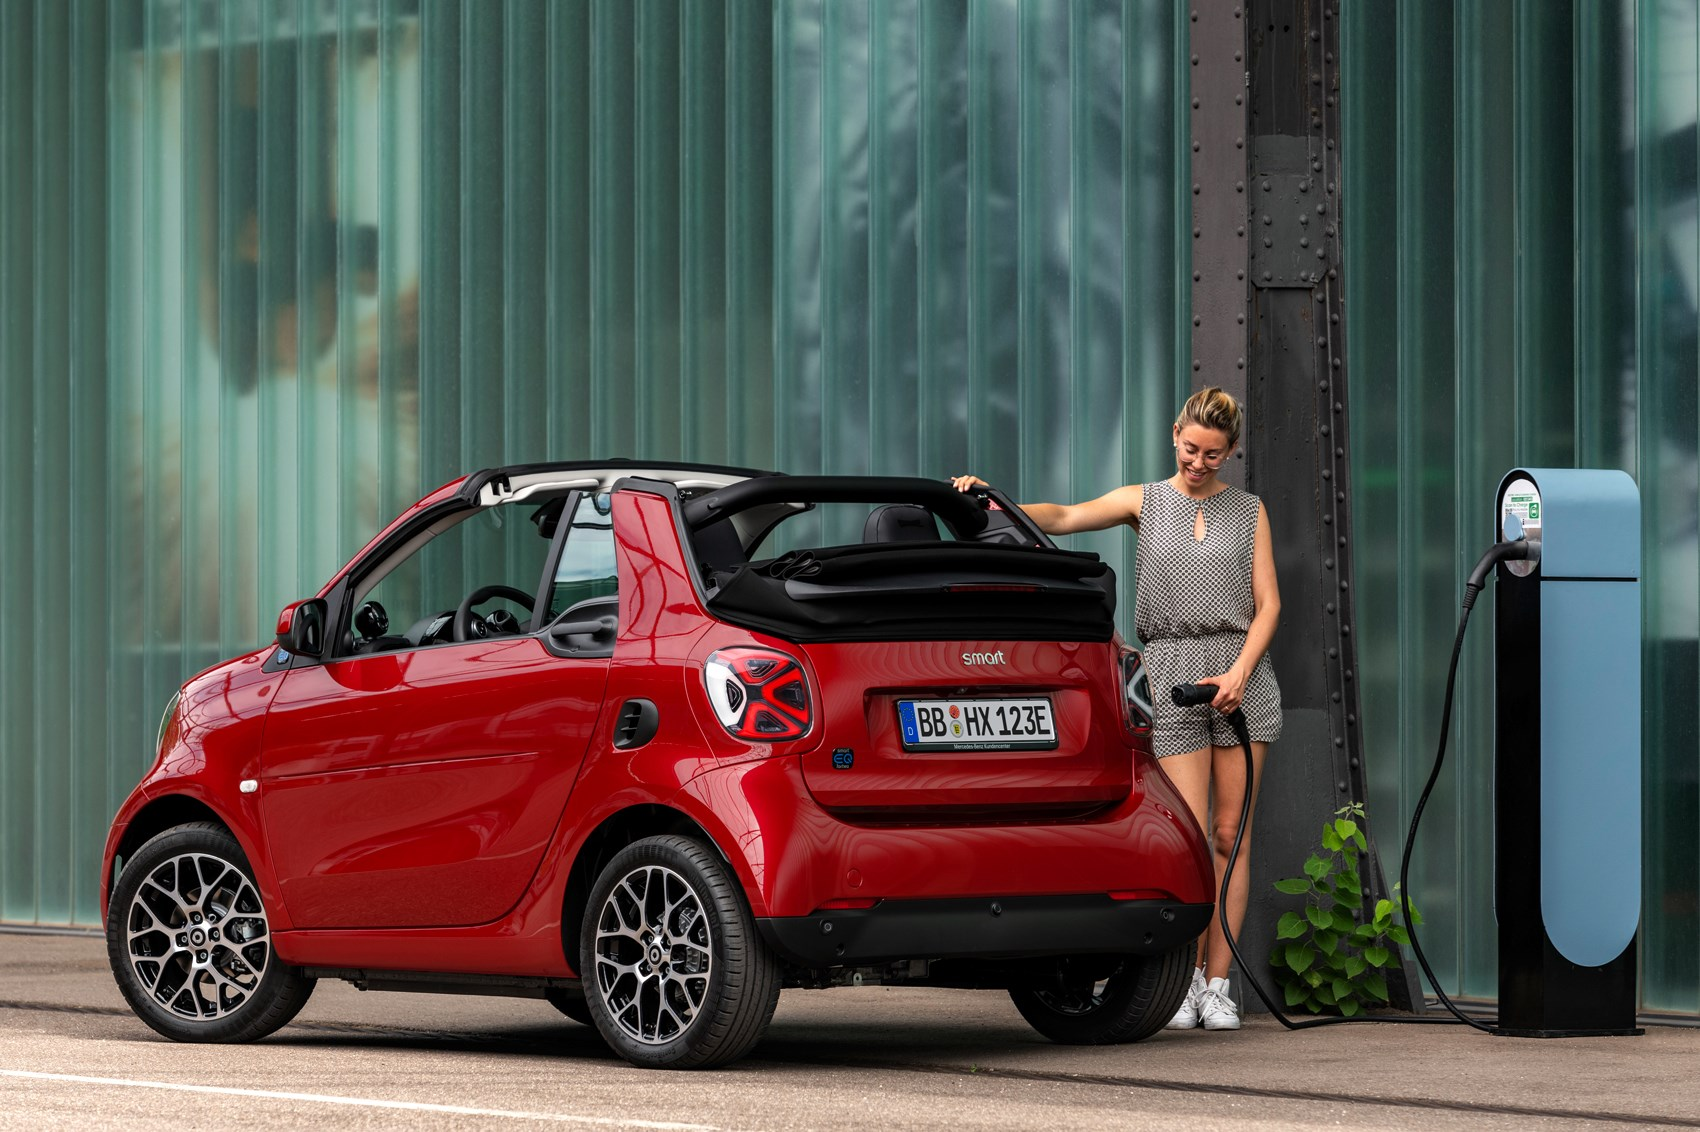 smart eq refreshed fortwo and forfour unveiled car magazine. Black Bedroom Furniture Sets. Home Design Ideas